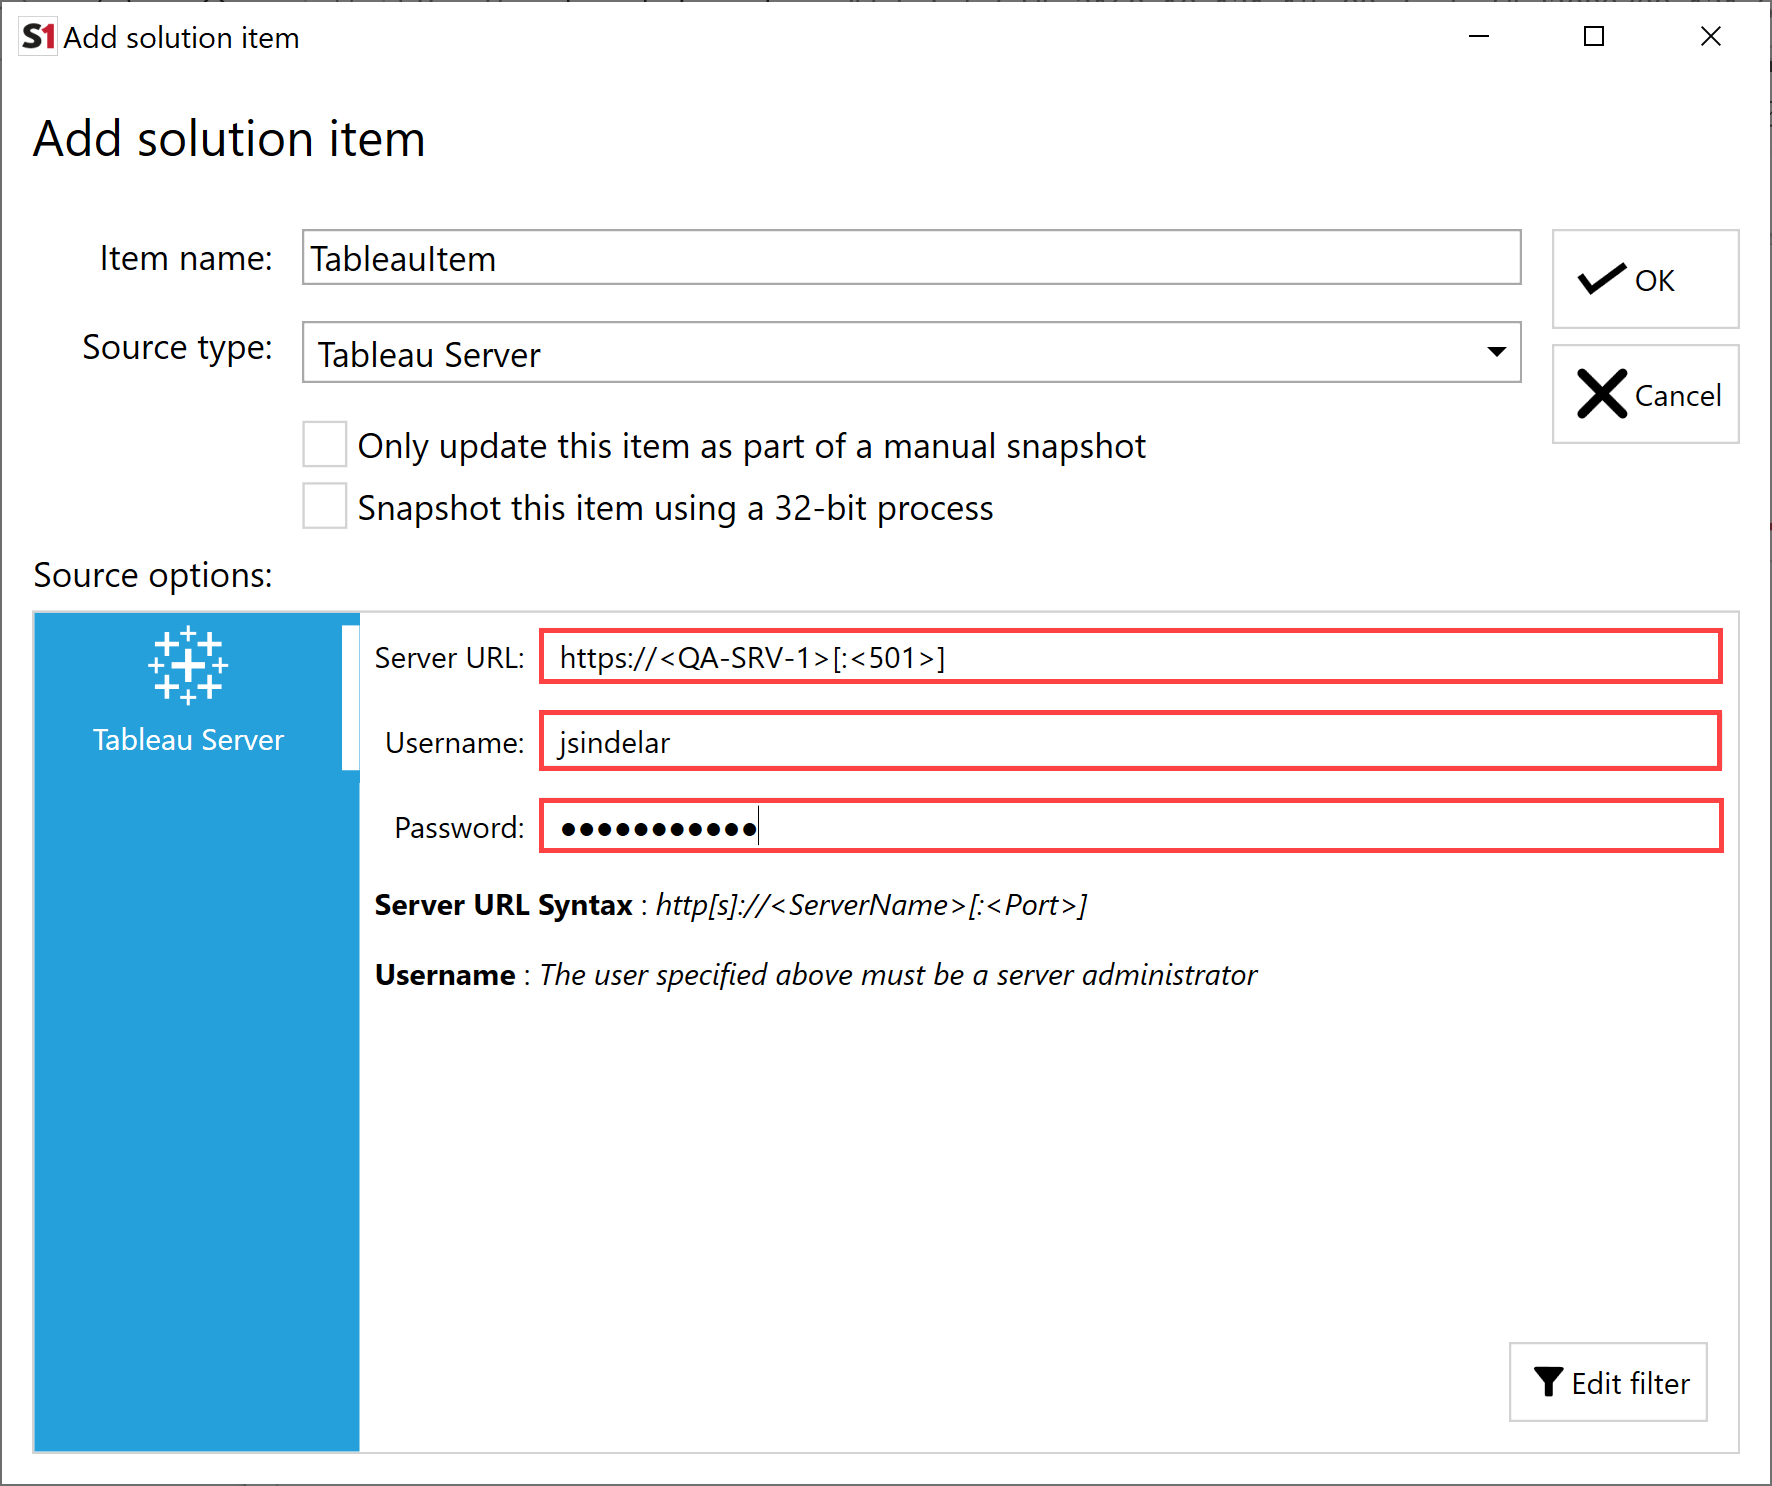 SentryOne Document Add Solution Item Tableau Server credentials